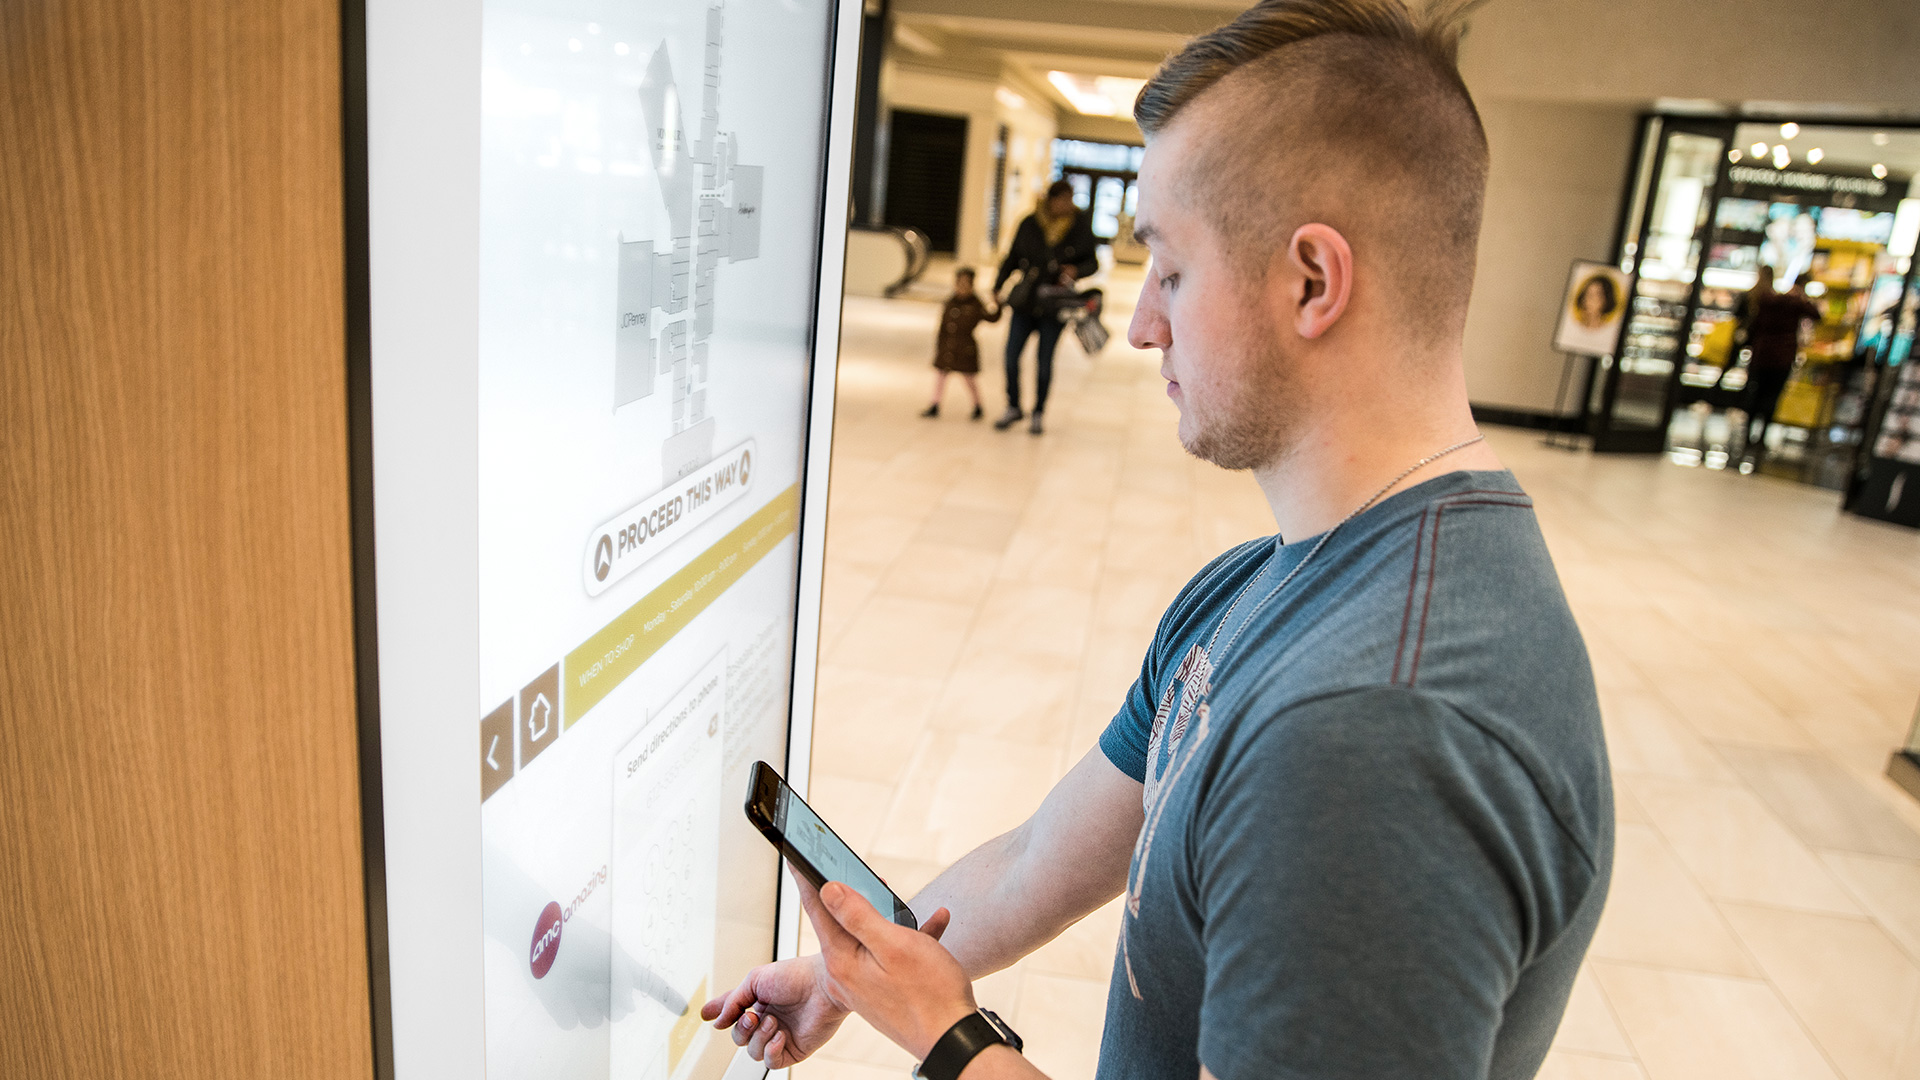 A guy using the interactive wayfinding kiosk at the Rosedal Center